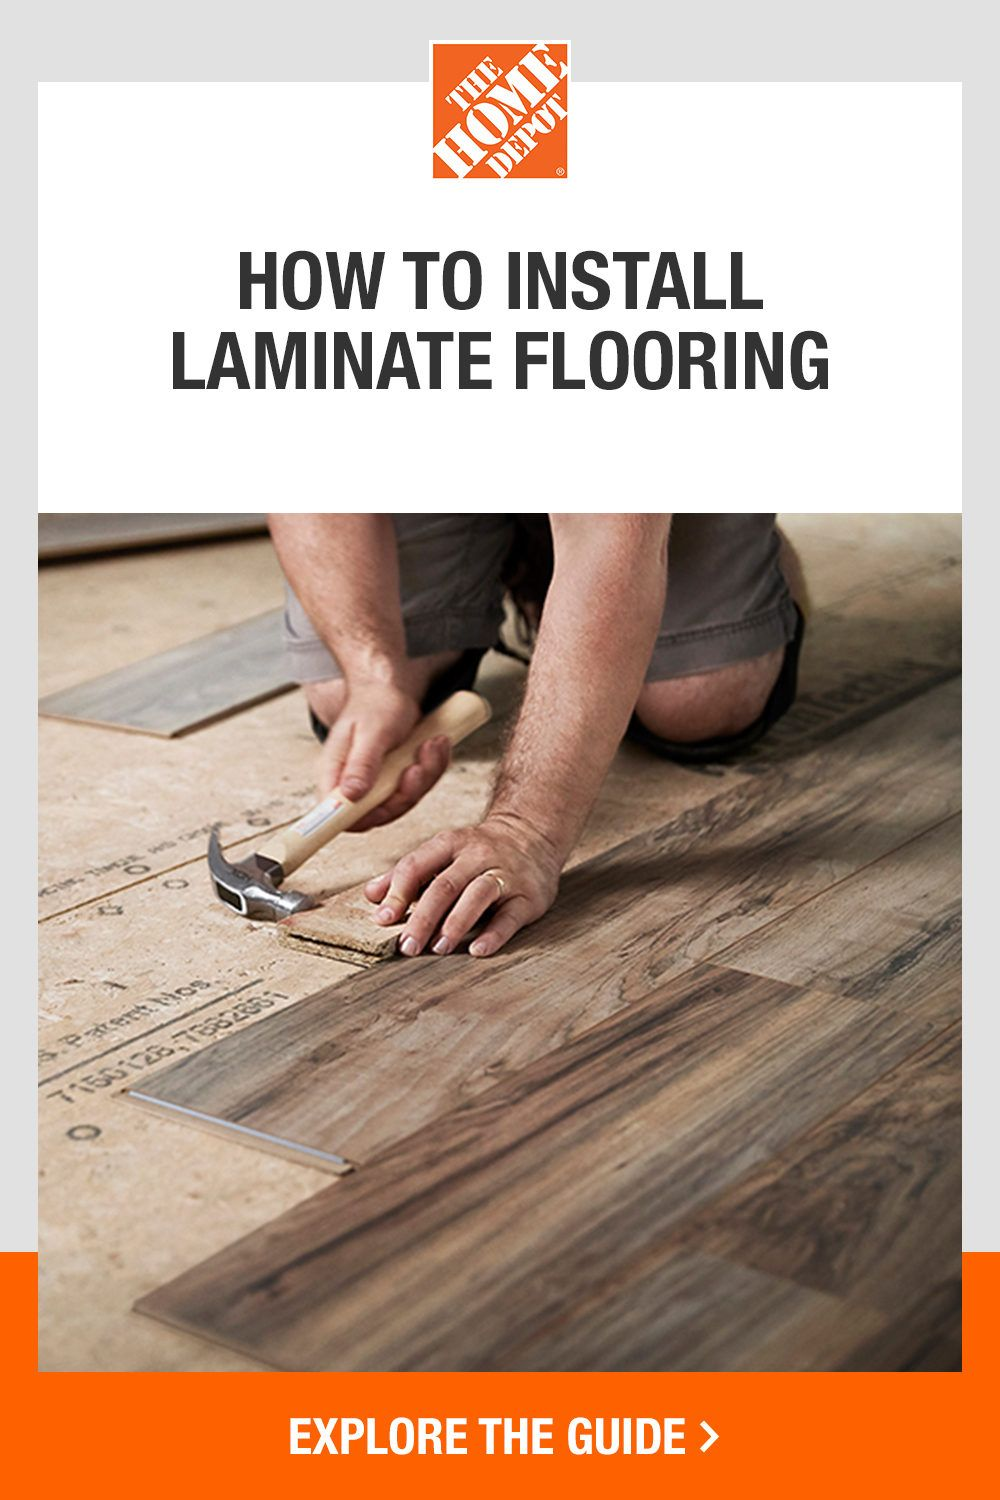 Now is the time to refresh your floors with The Home Depot. Laminate flooringis an ideal project for DIYers and can instantly help upgrade your home. Because glue, grout or mortar are not involved, installation is a quick and relatively trouble-free process. From cutting the laminate floors to how to lay them, click The Home Depot guide to learn all the basics.